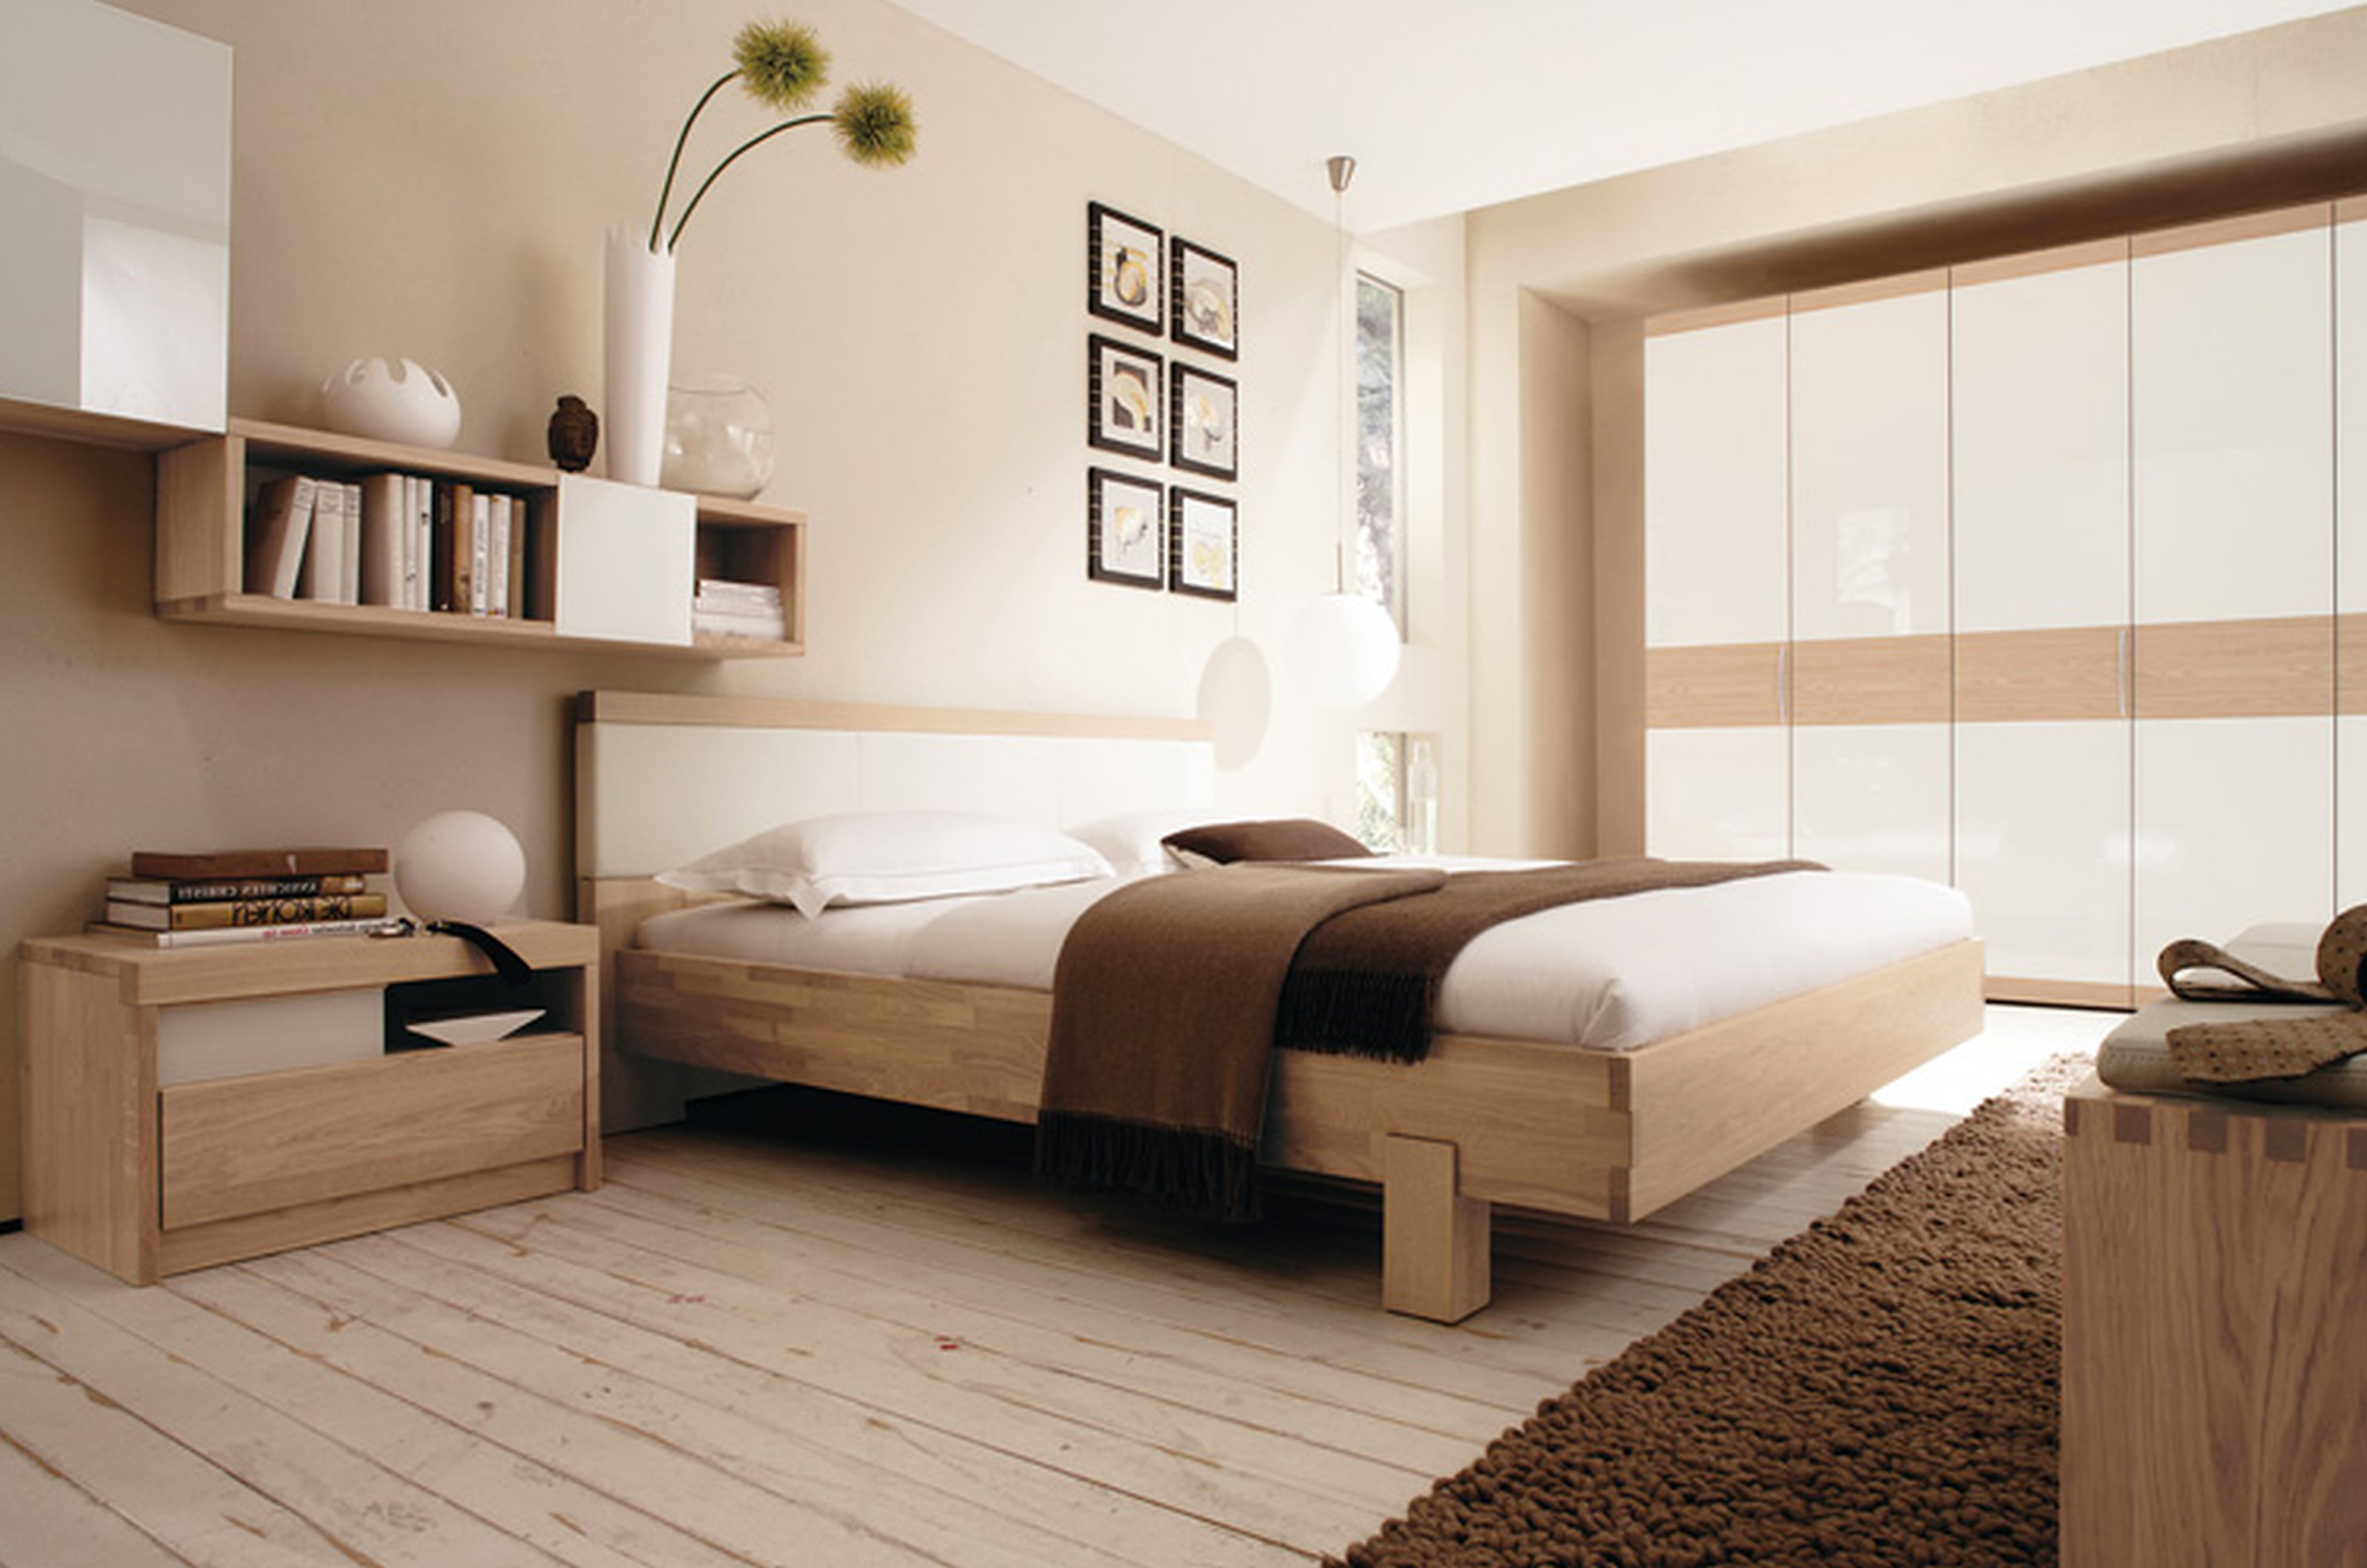 Bright Bedroom with Wooden Design